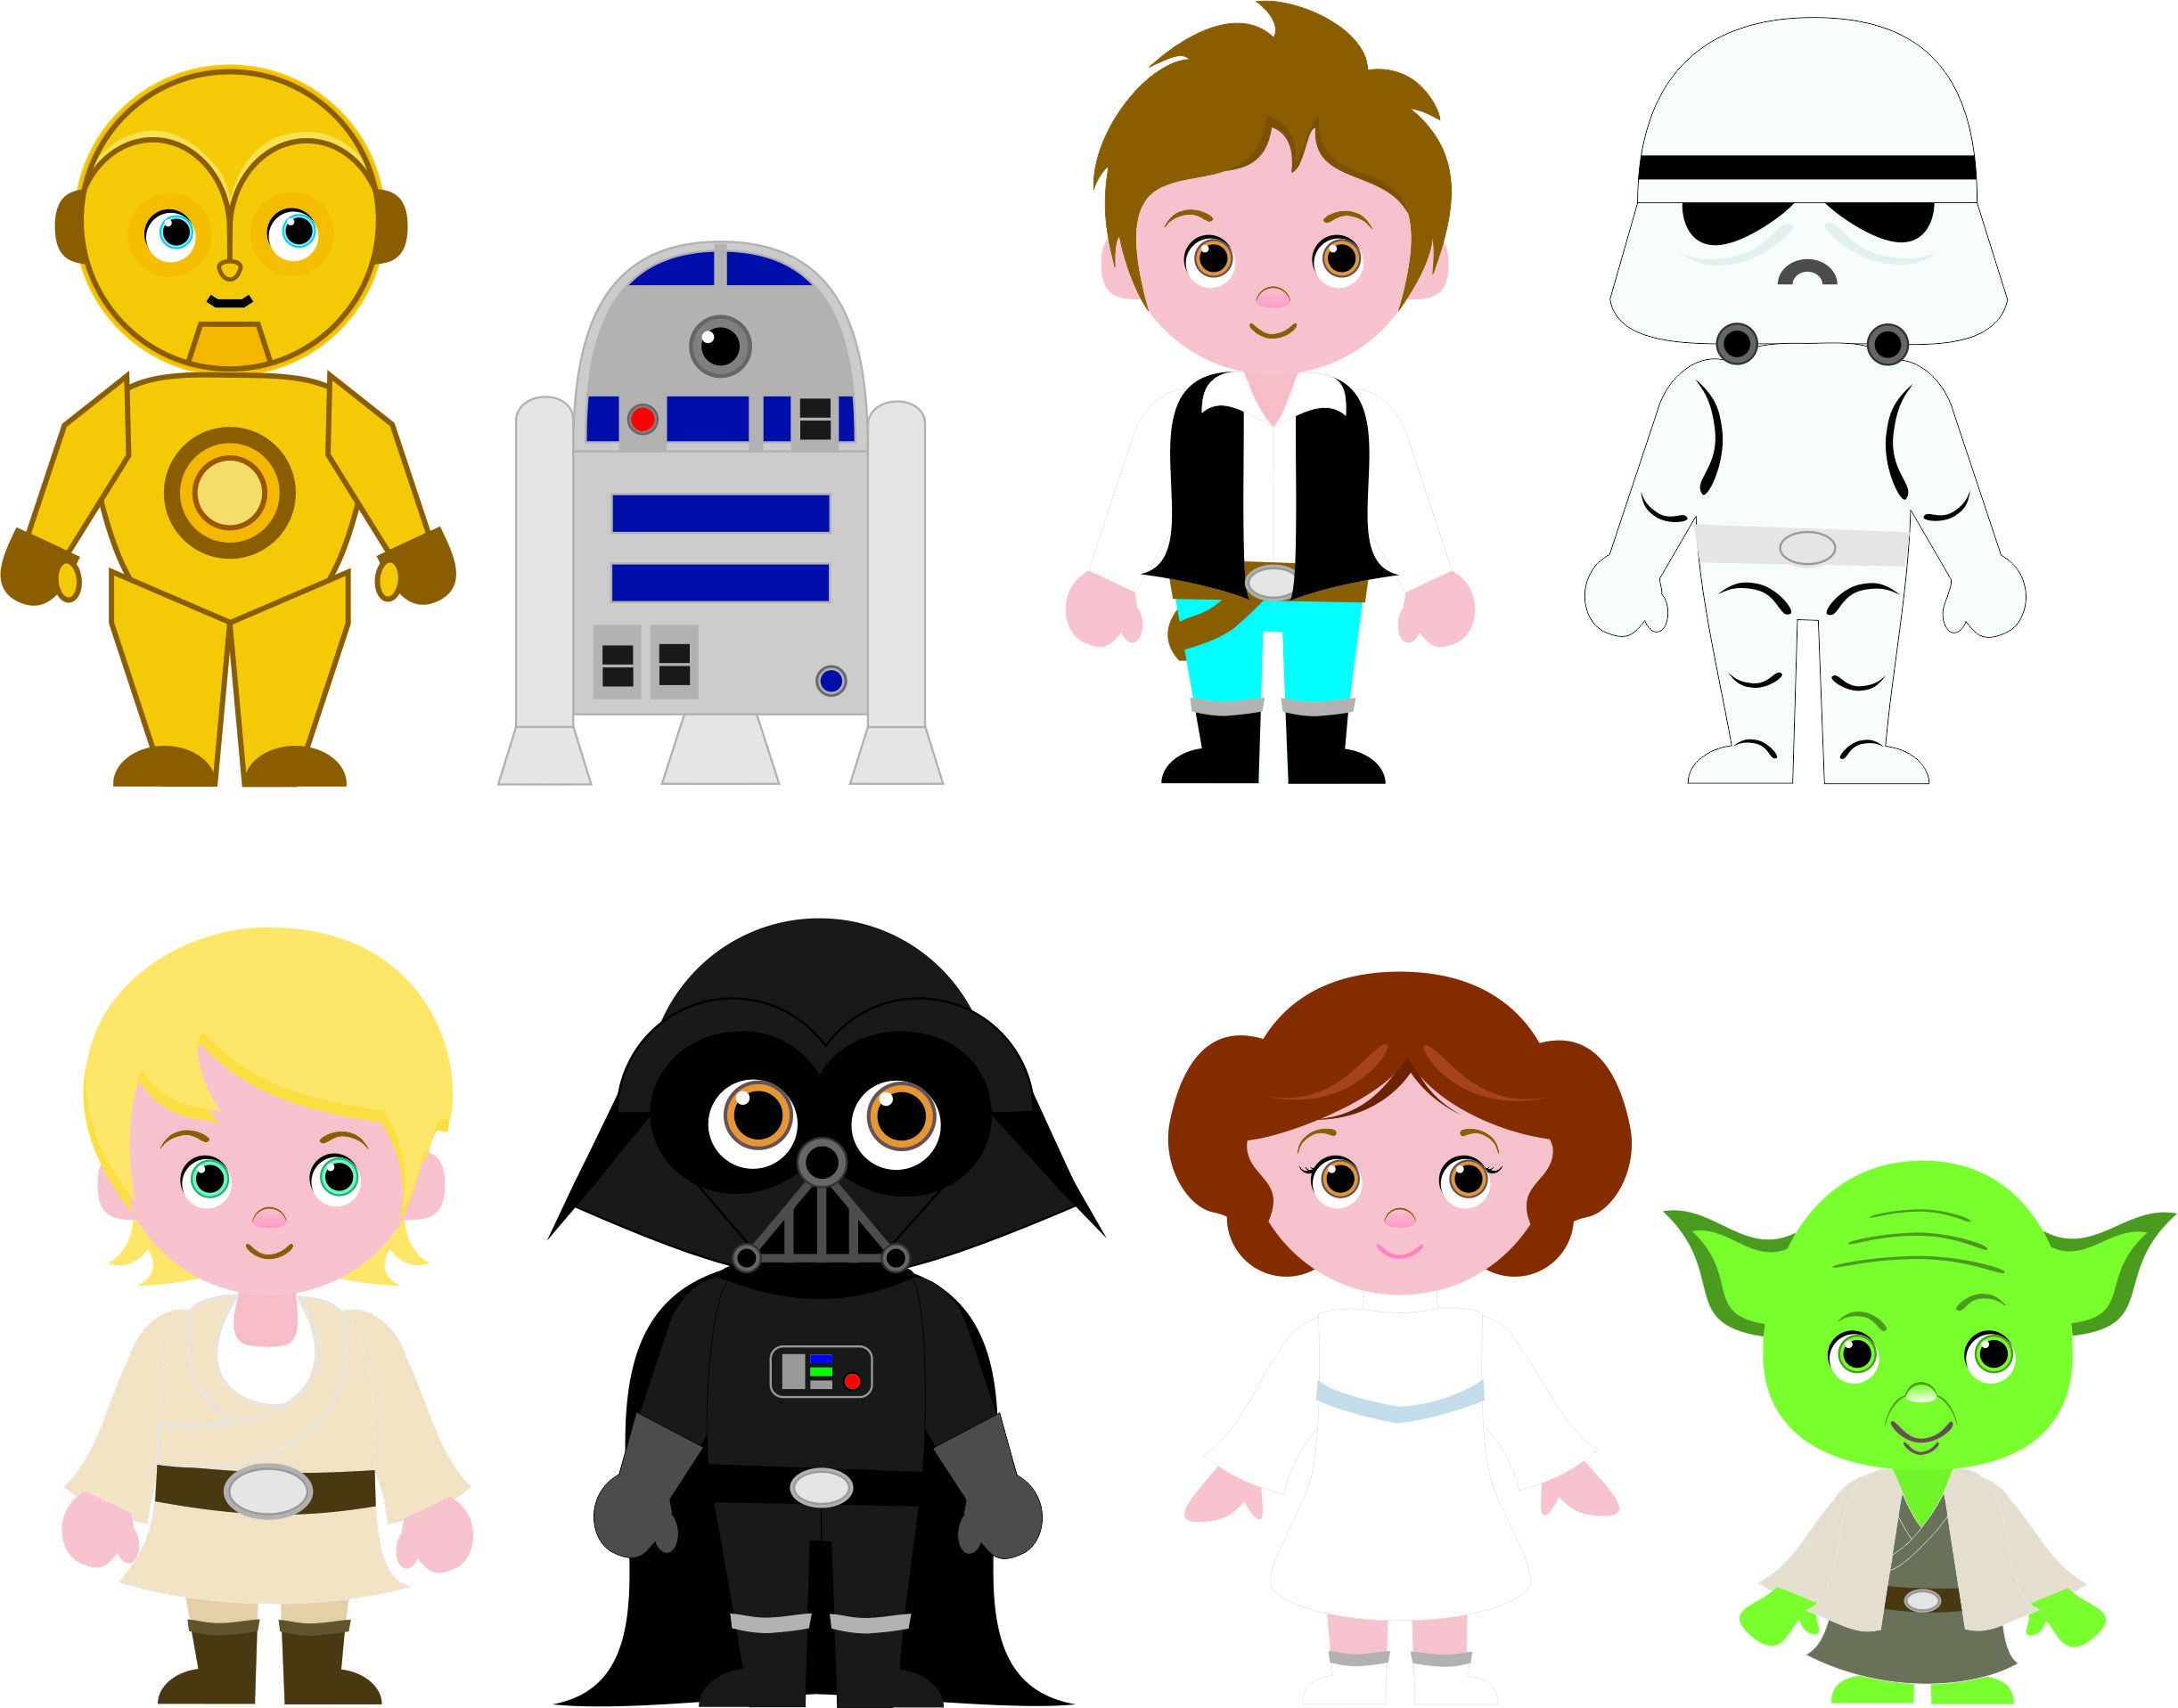 Cliparts Fofinhos Para Festa Star Wars Cute Cliparts For Star Wars Party